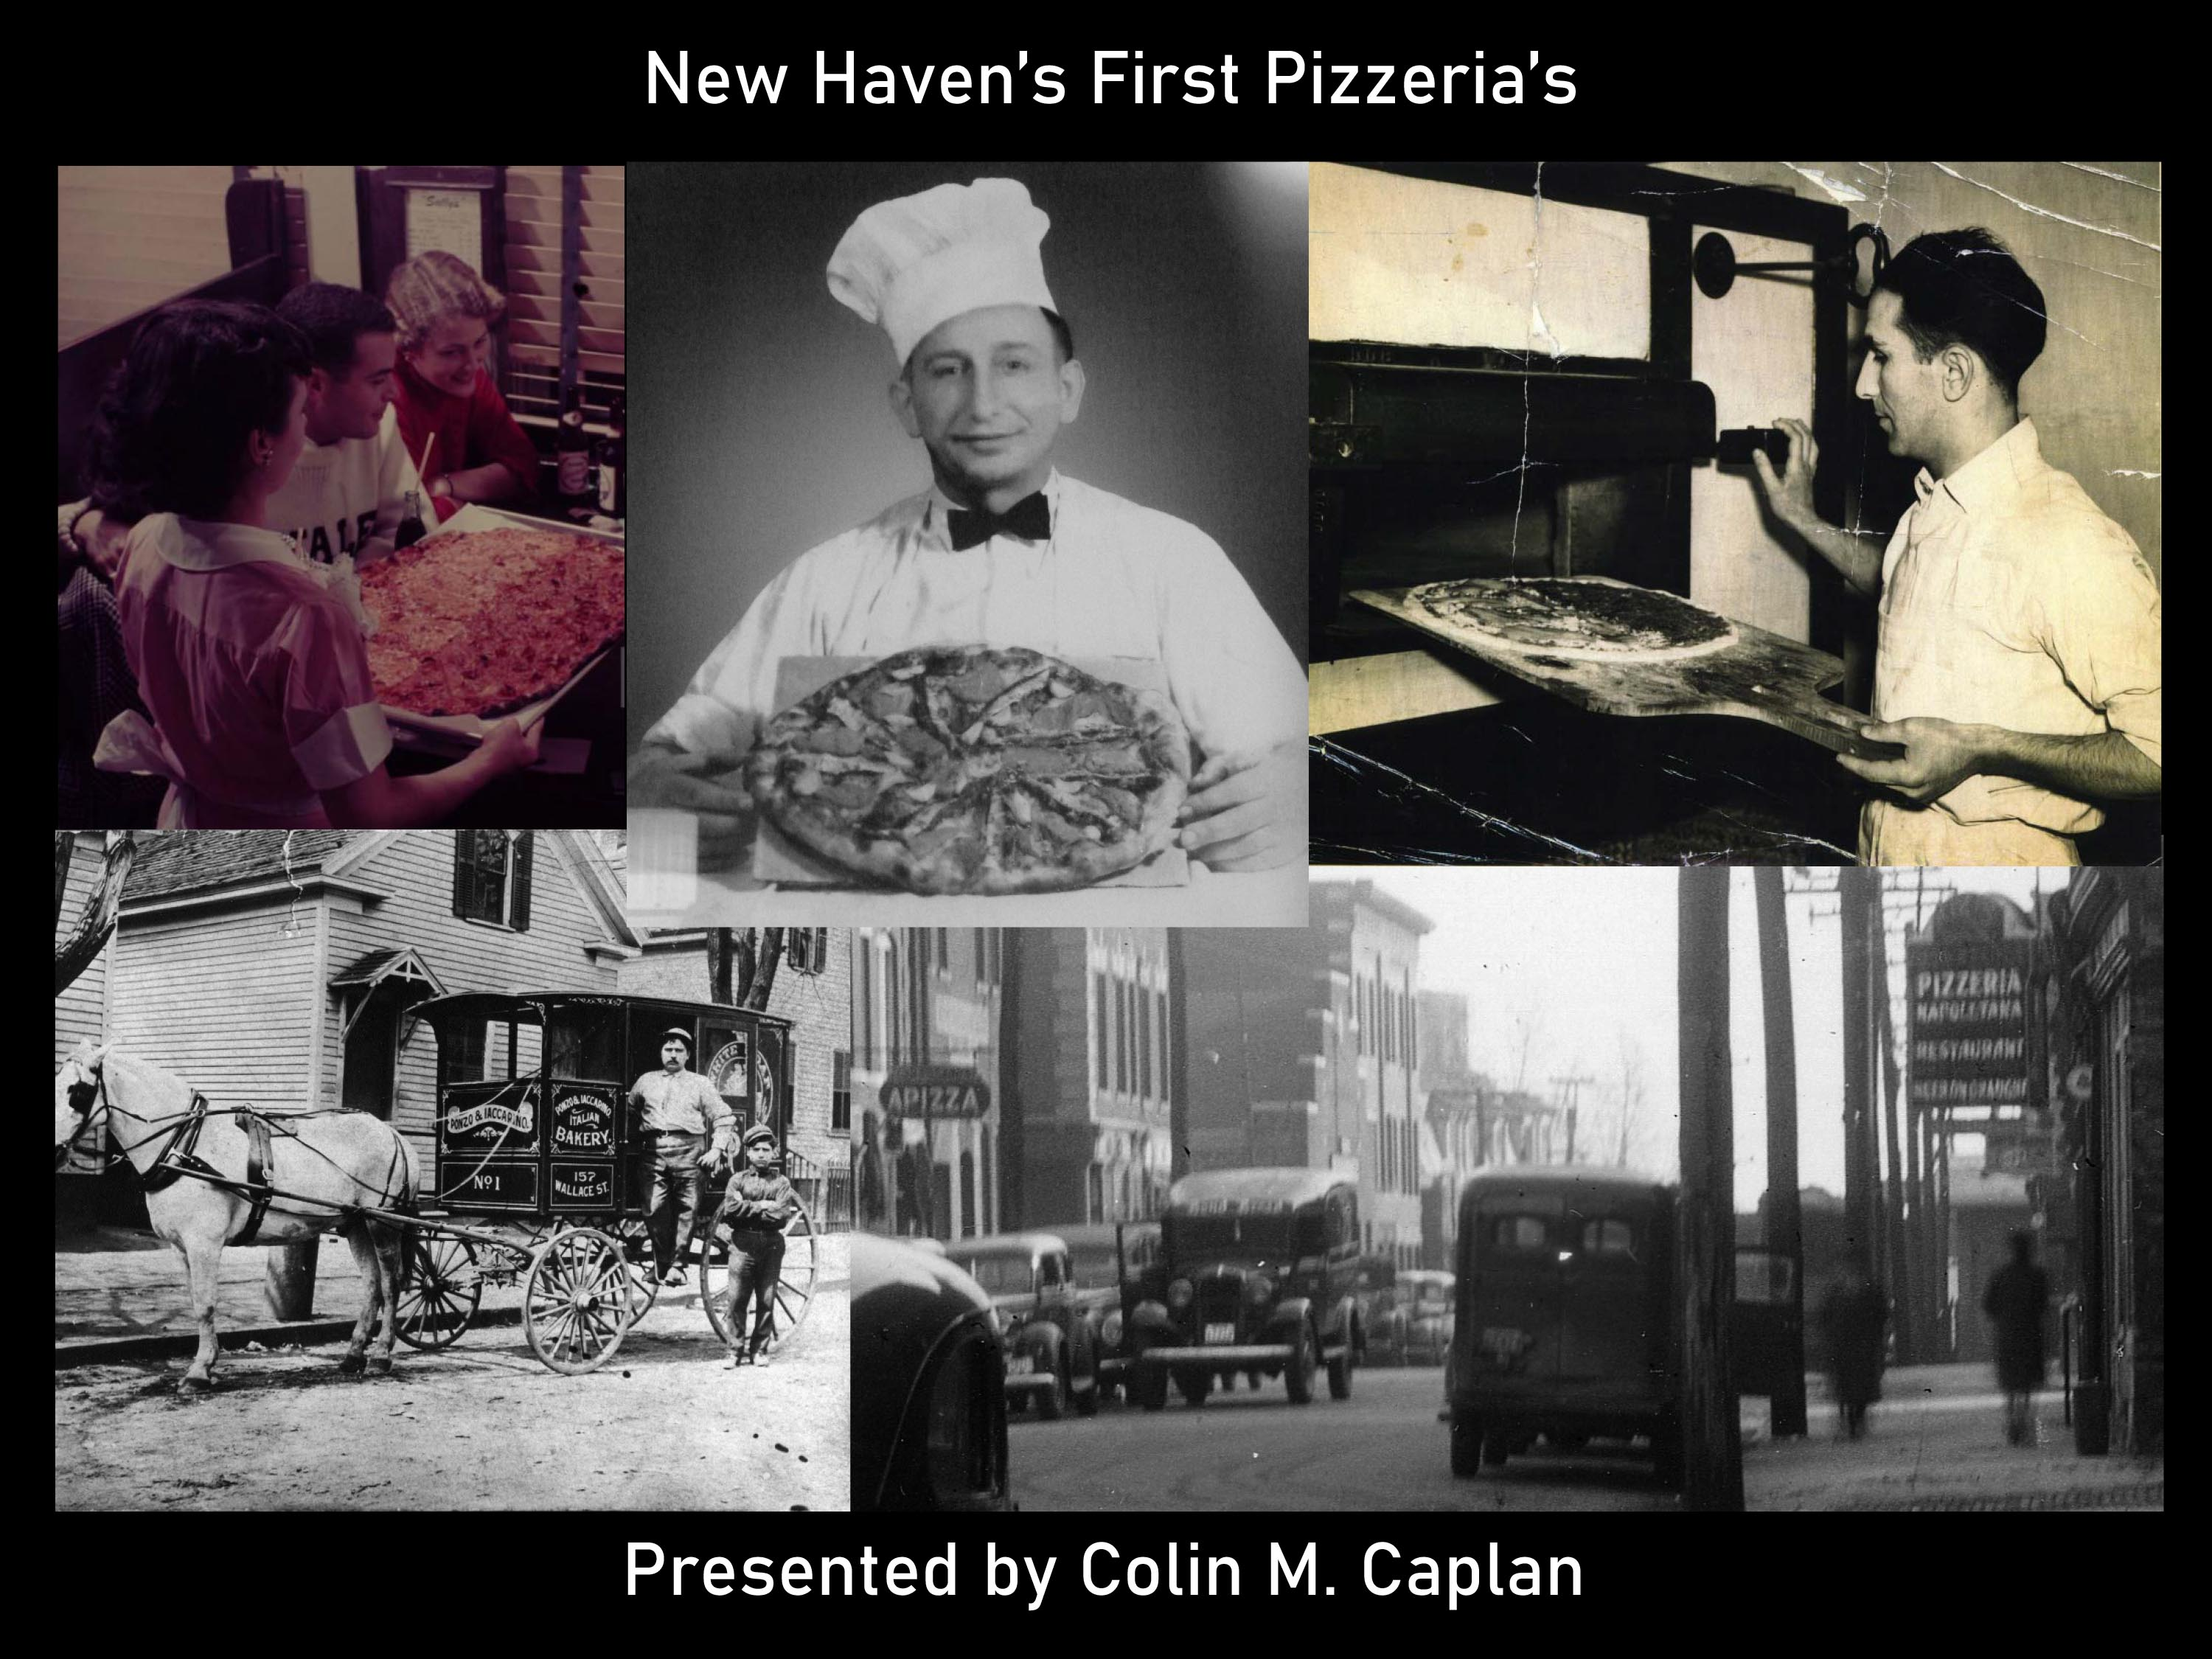 New Haven's First Pizzerias